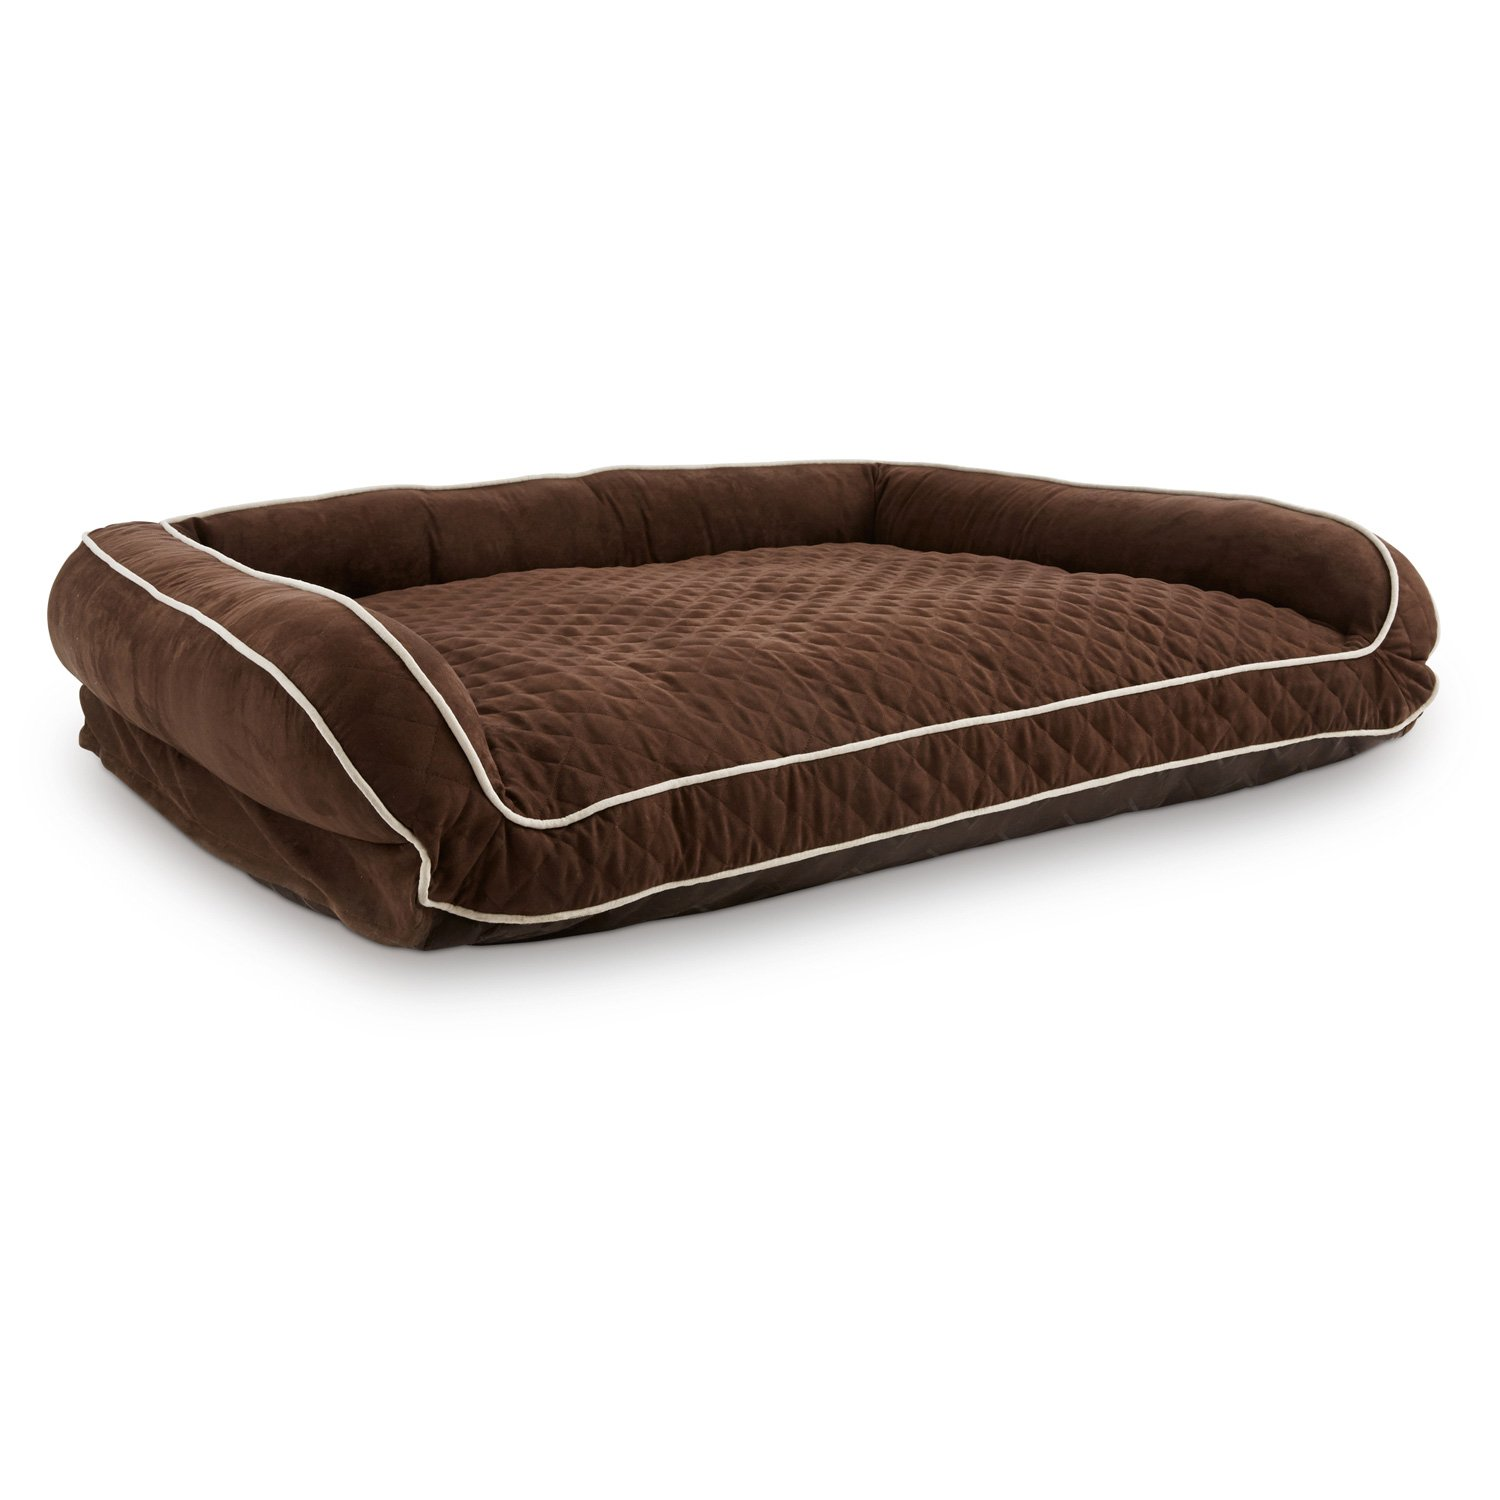 Foam Bed Dog Beds And Bedding Best Large And Small Dog Beds On Sale